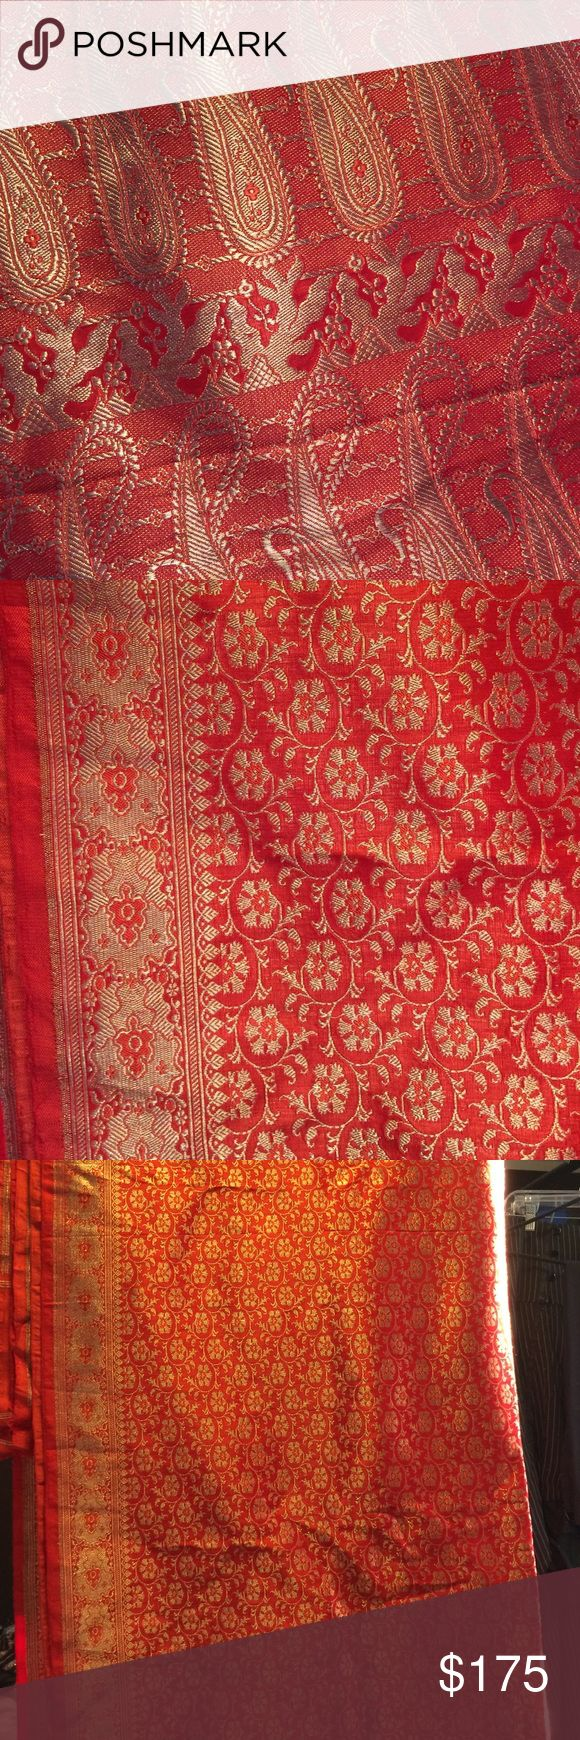 Vintage red and gold 100% silk sari This is an uncut 100% silk sari purchased in 1992. The possibilities are endless. Will consider best reasonable offer. no name Other